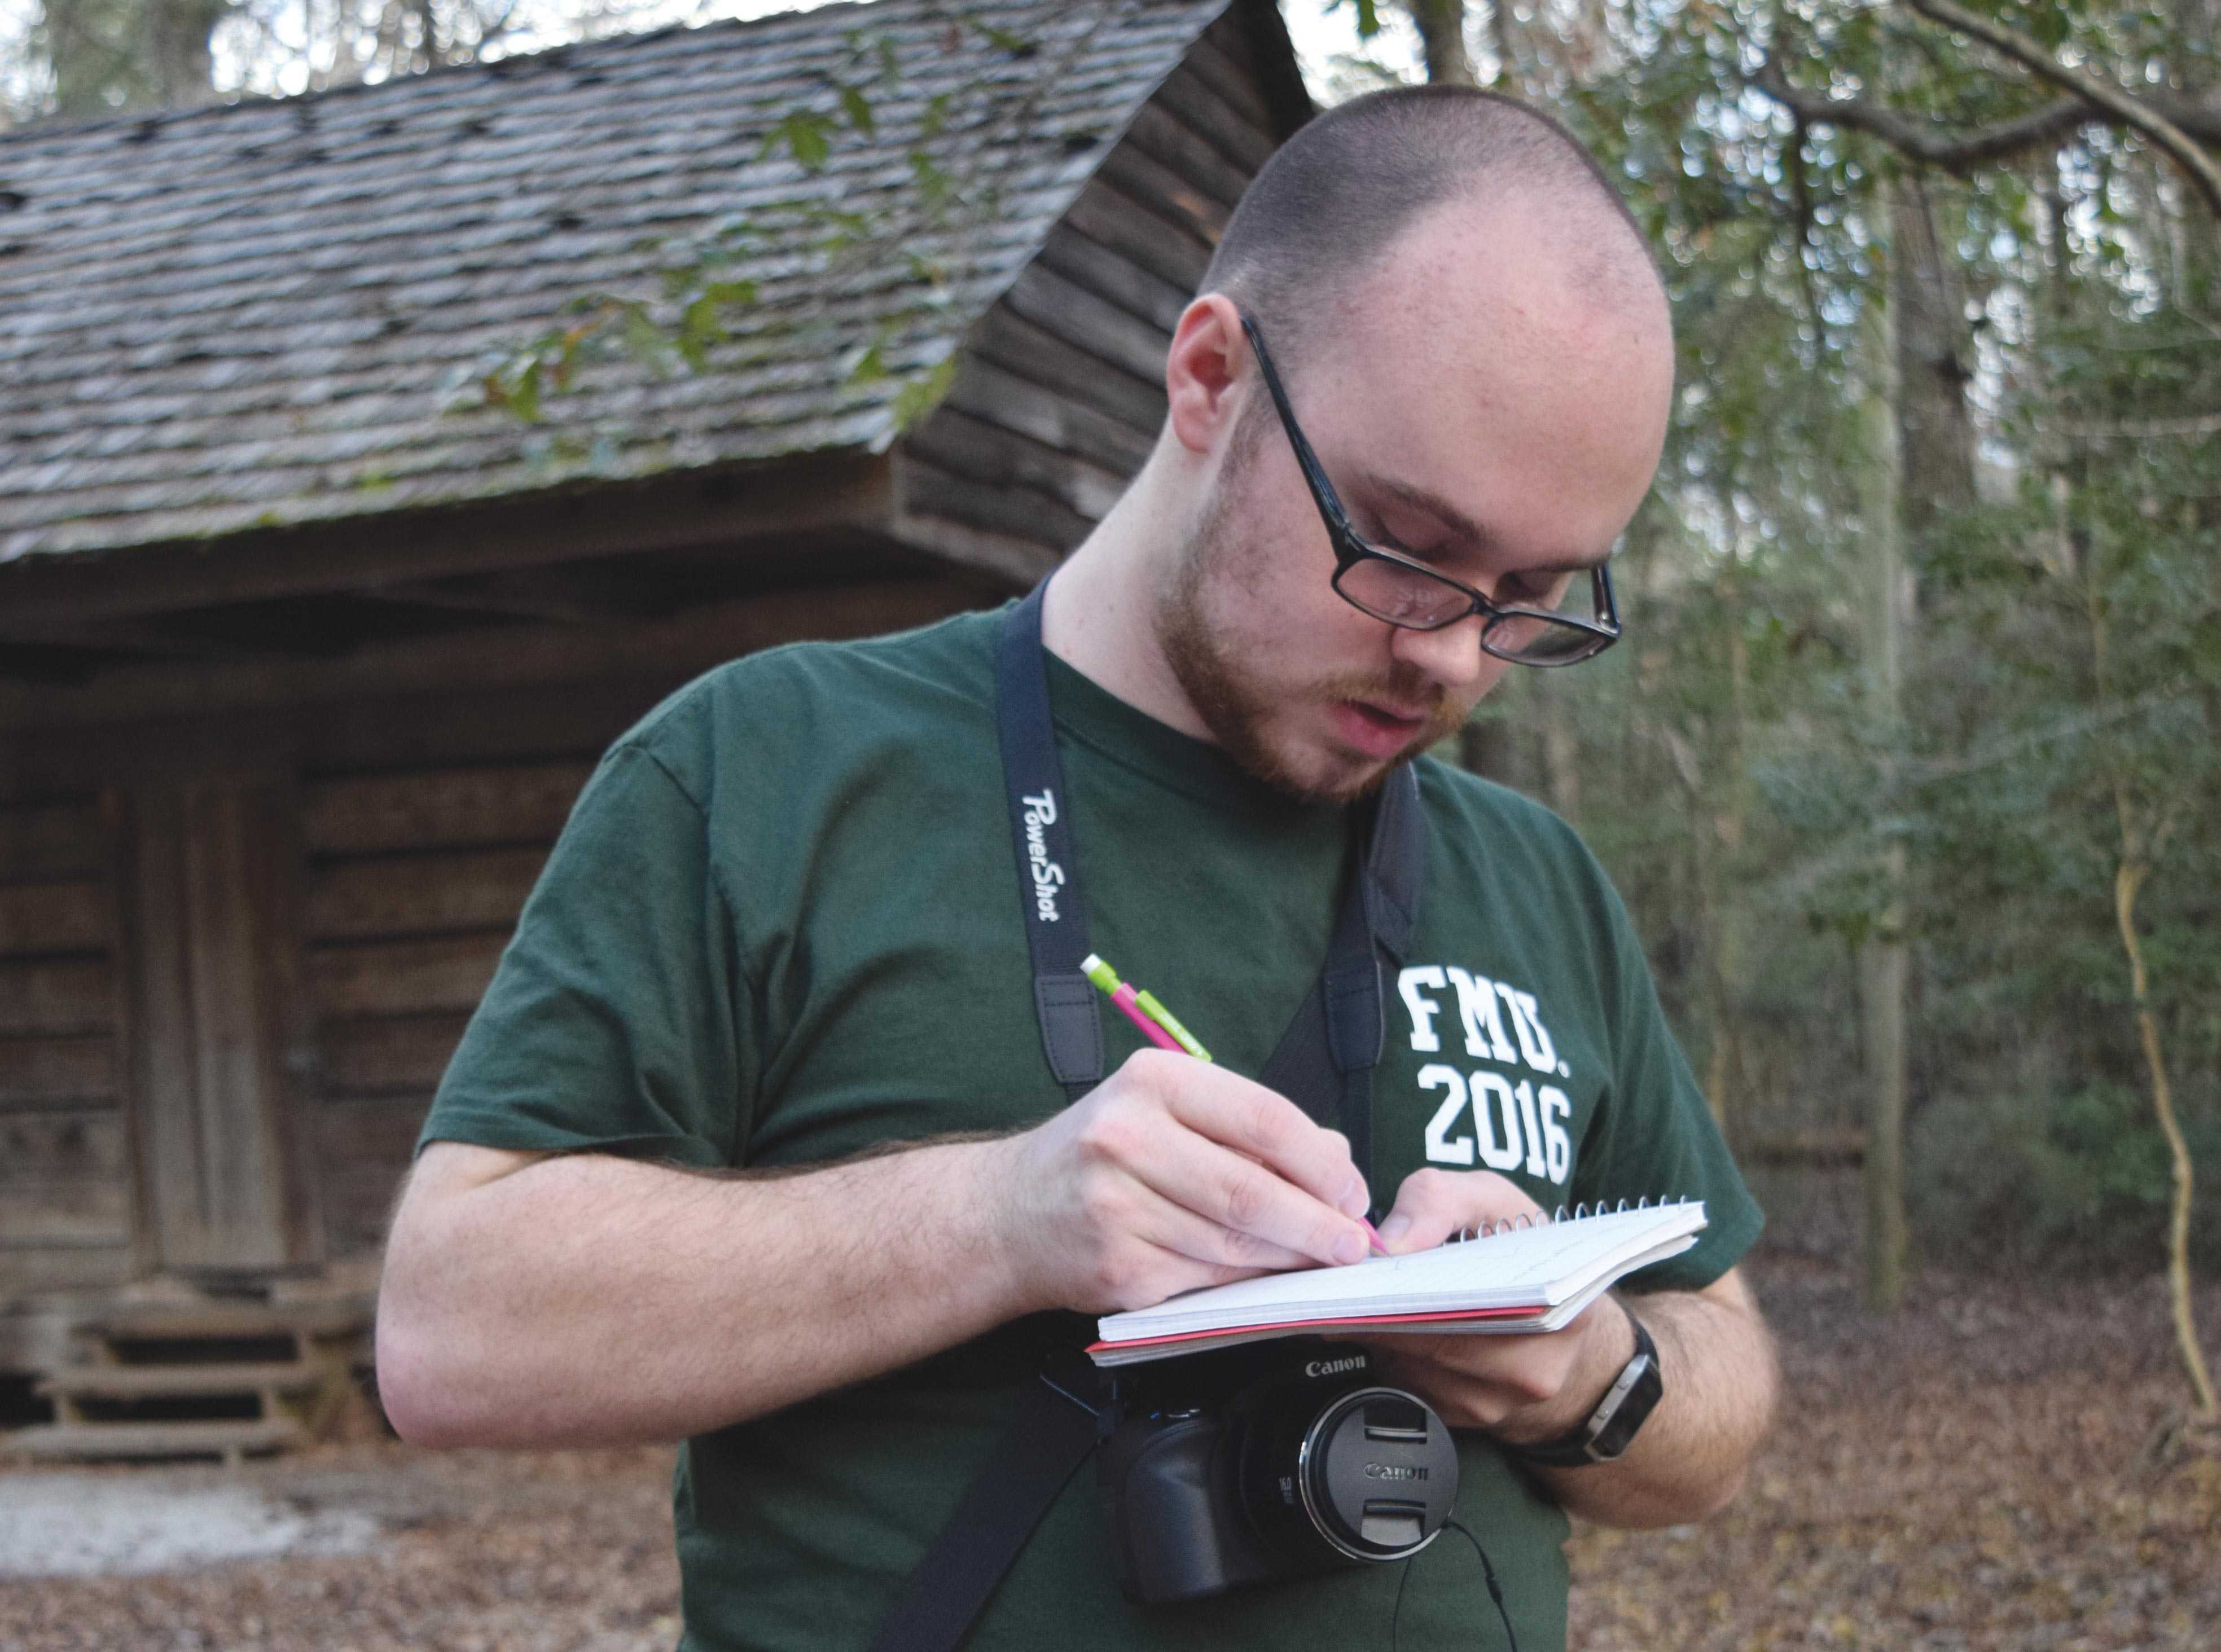 Senior Kyle Stewart is compiling a catalogue of plant species located on the FMU nature trail for his honors thesis so that nature trail visitors can more easily identify the variety of plants.